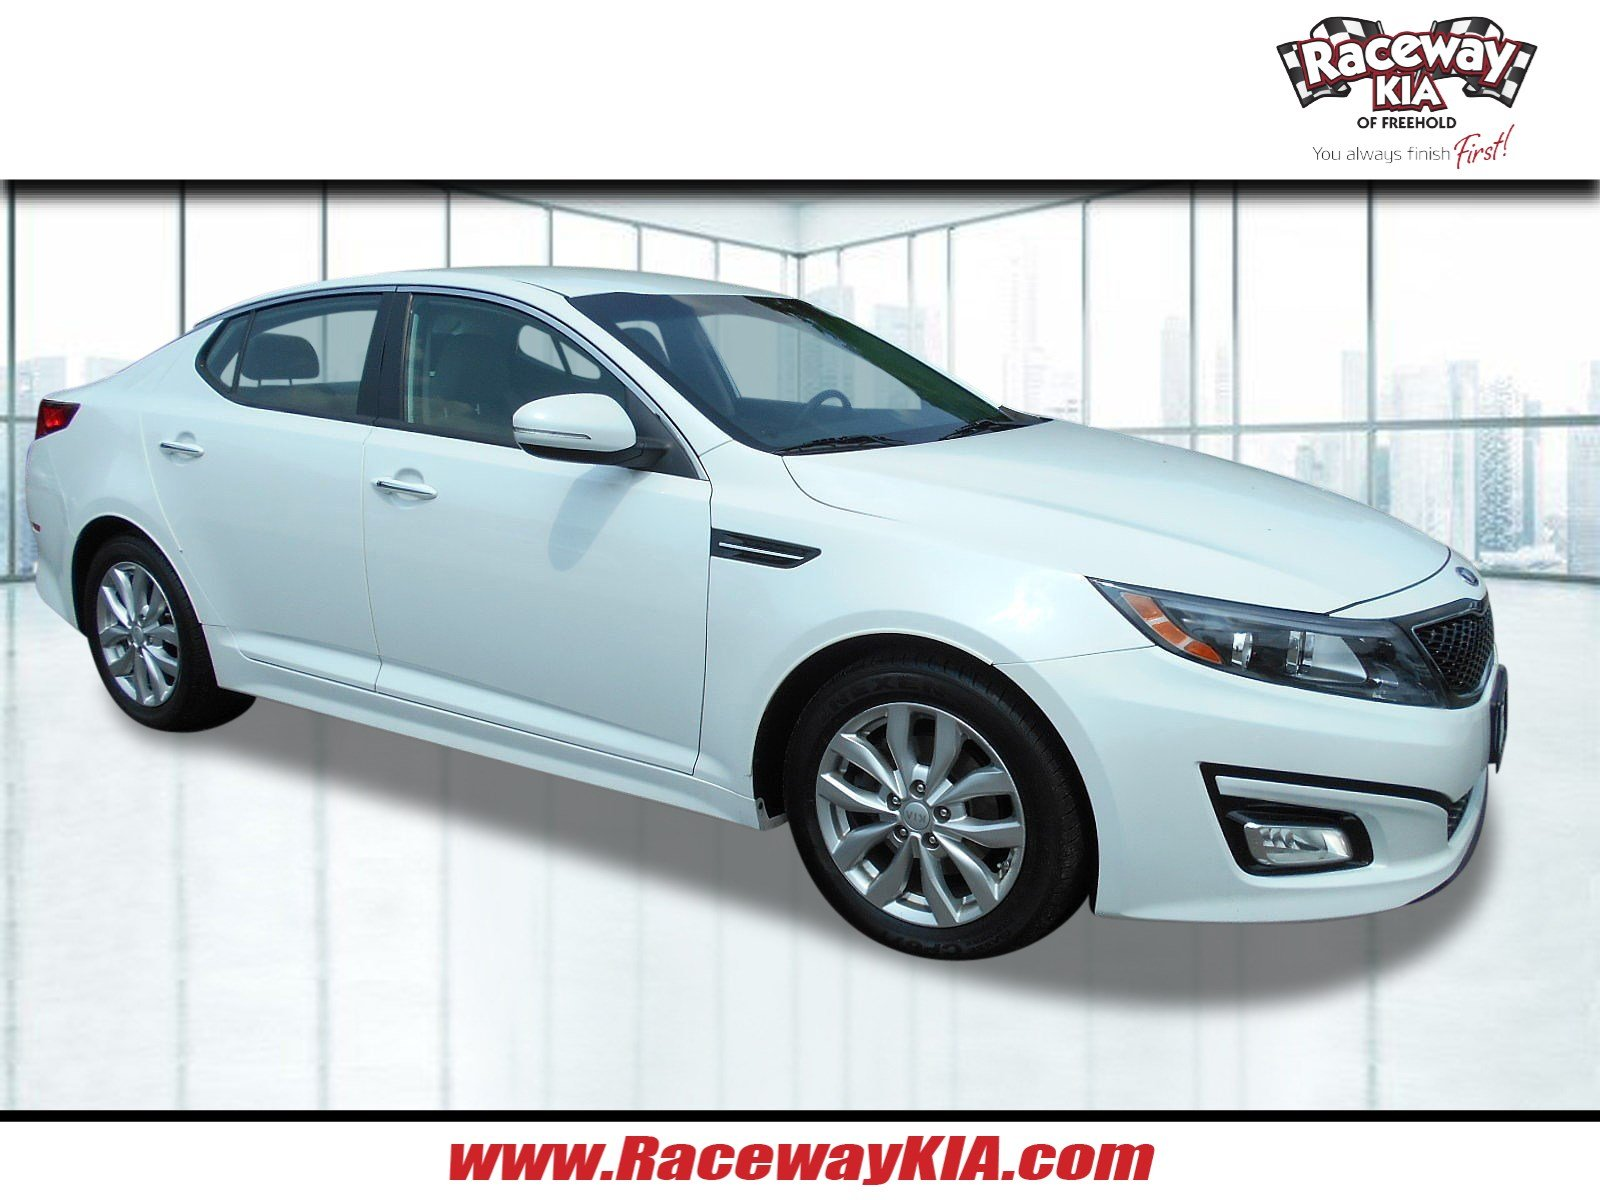 Certified Pre Owned 2015 Kia Optima Ex 4dr Car In Freehold Rio Remote Starter